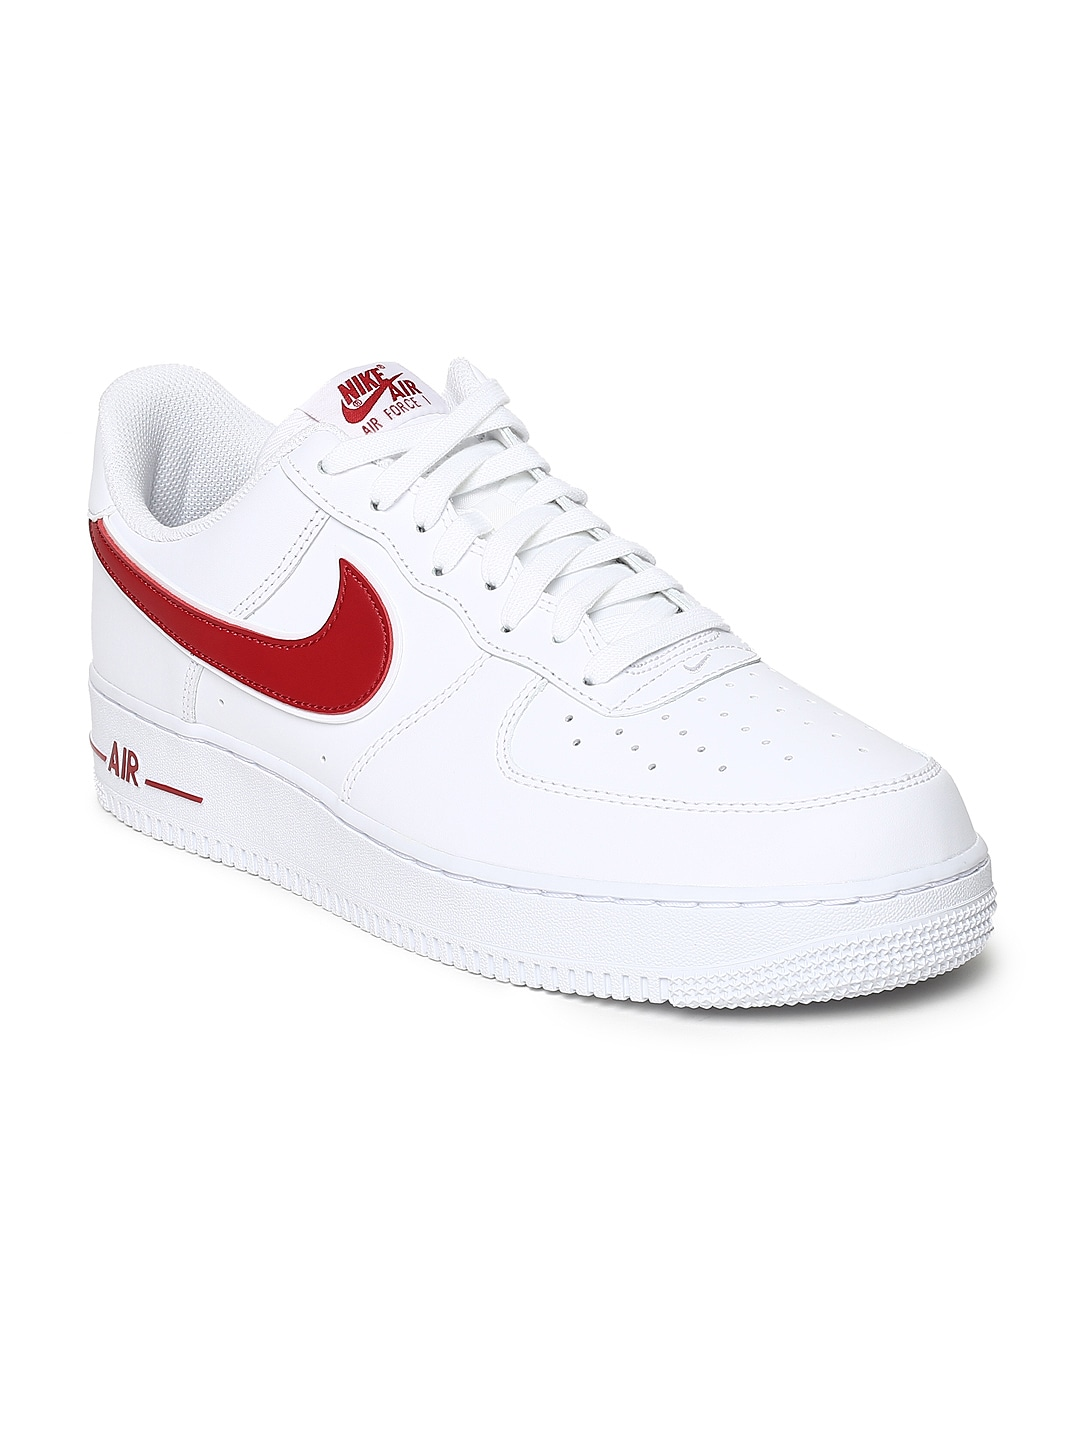 190d390ff502 Nike Air White Shoes - Buy Nike Air White Shoes online in India